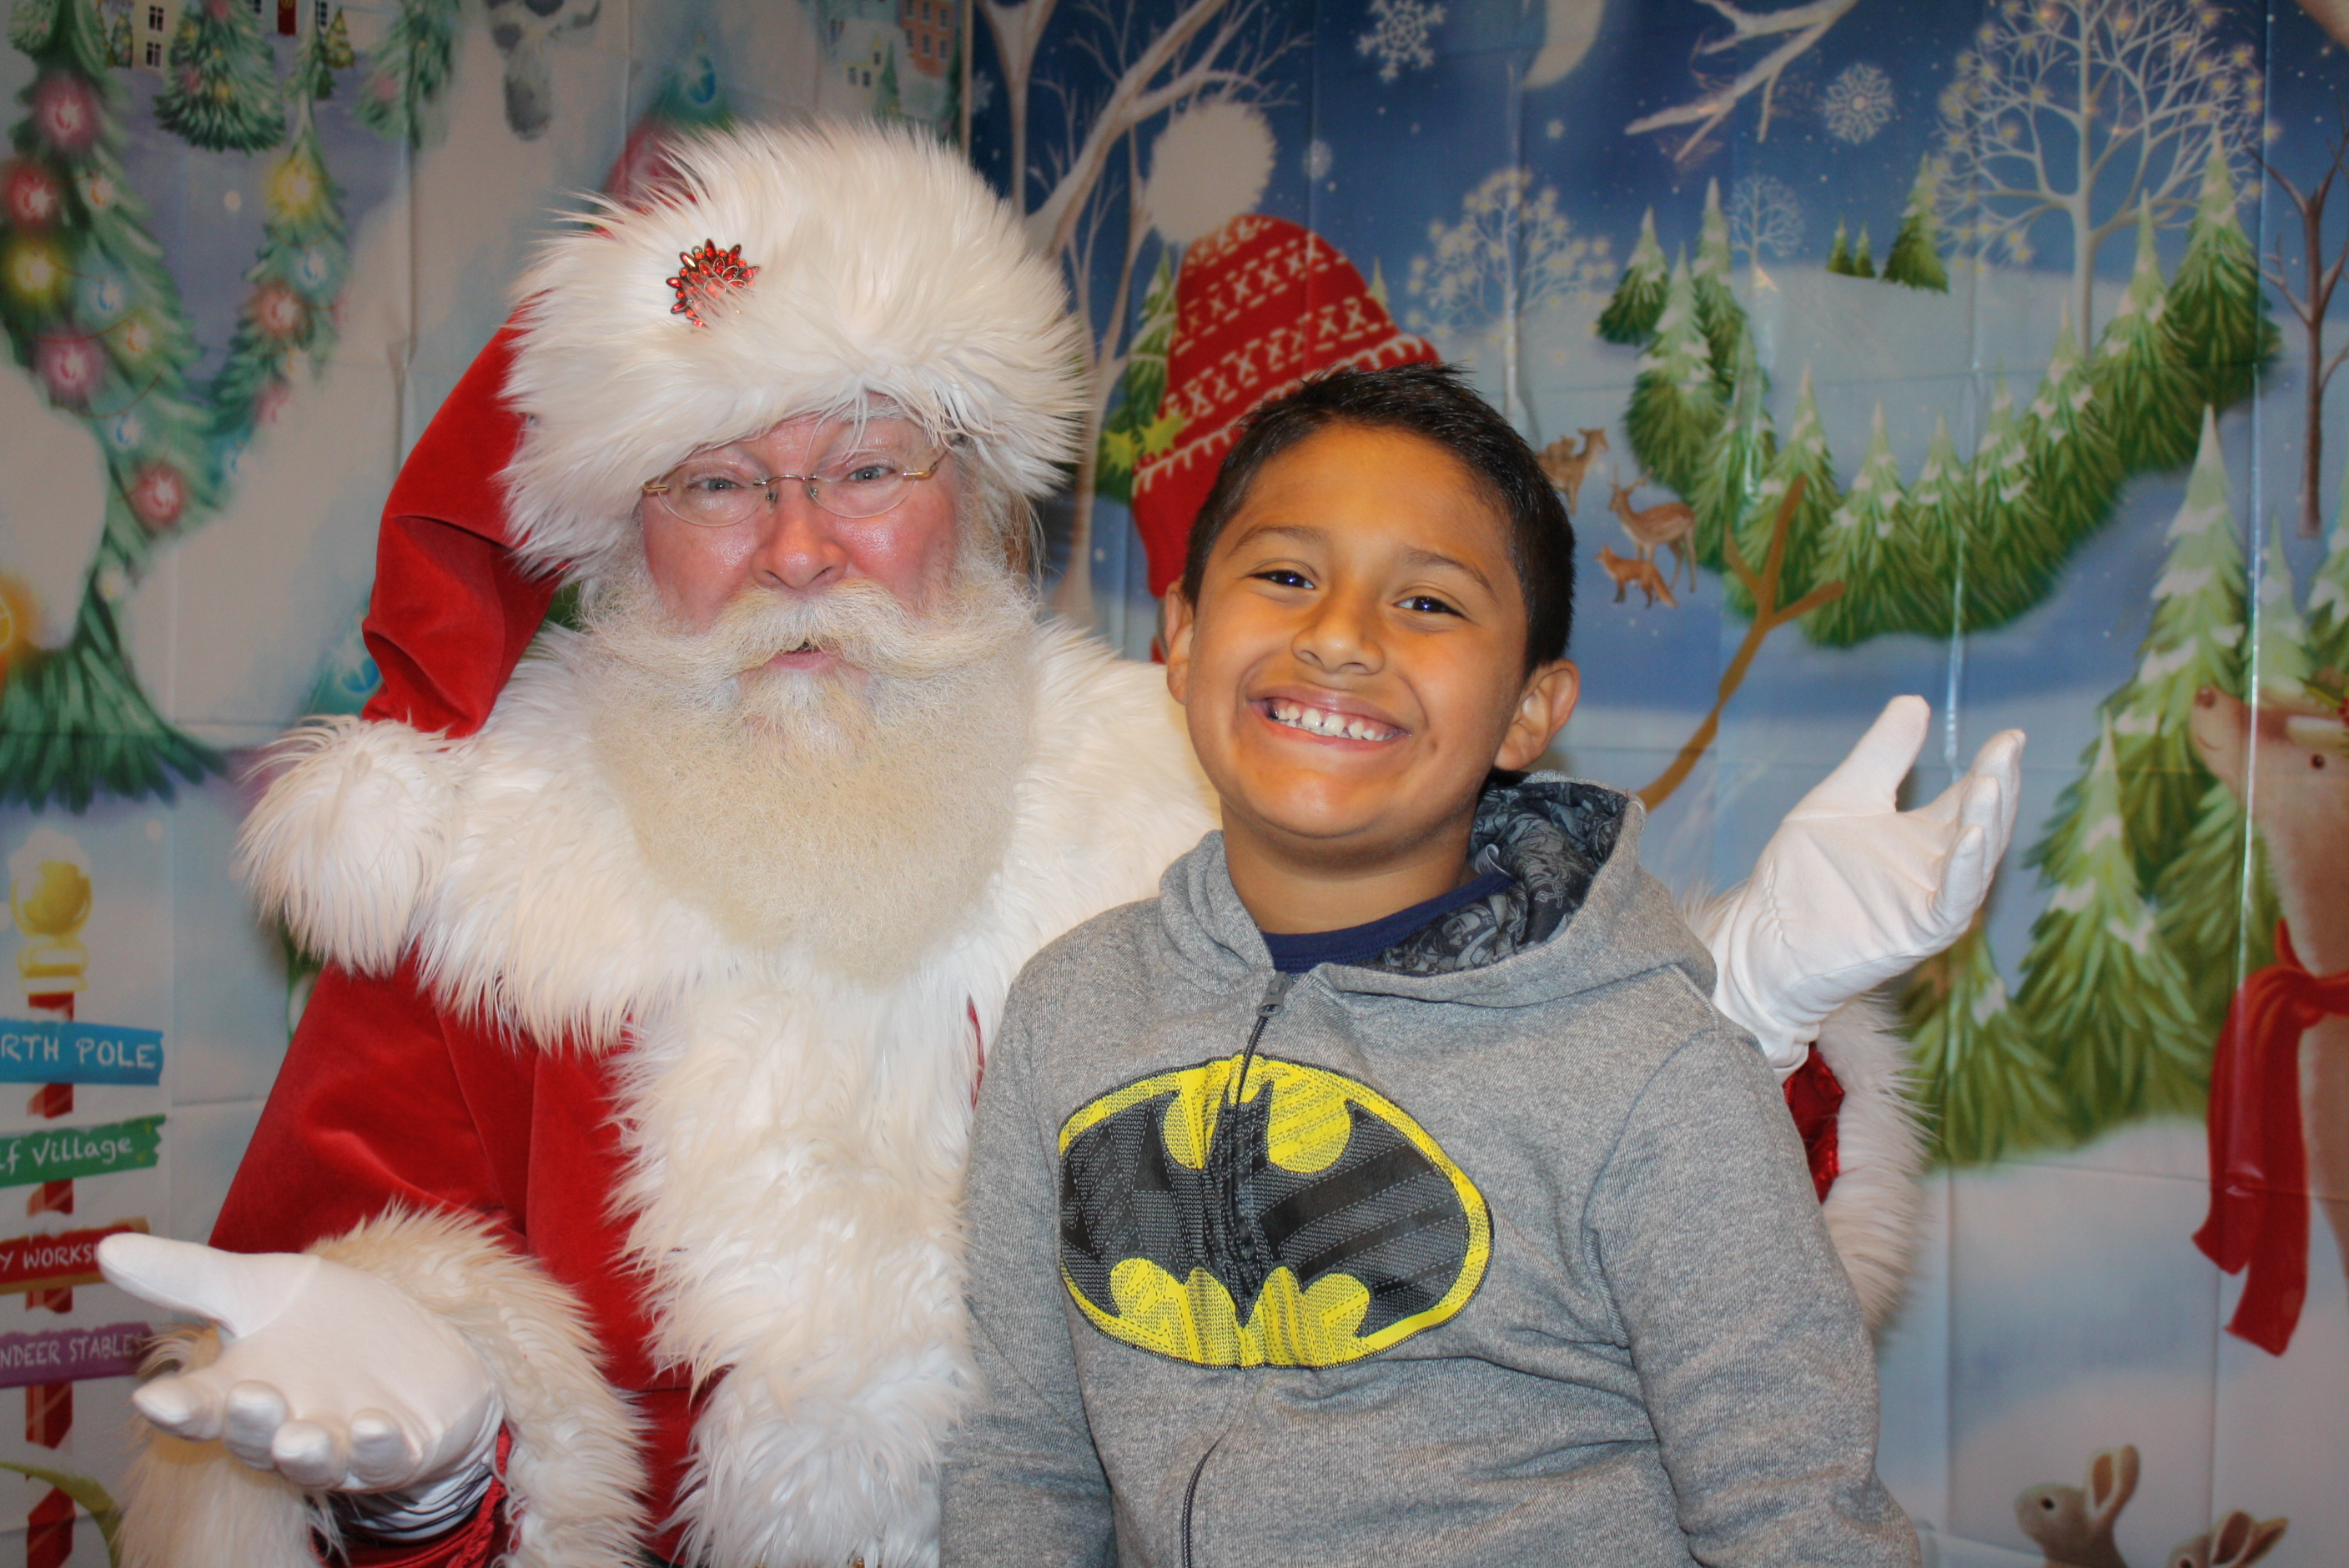 Hire Santa True Santa Claus In Thousand Oaks California